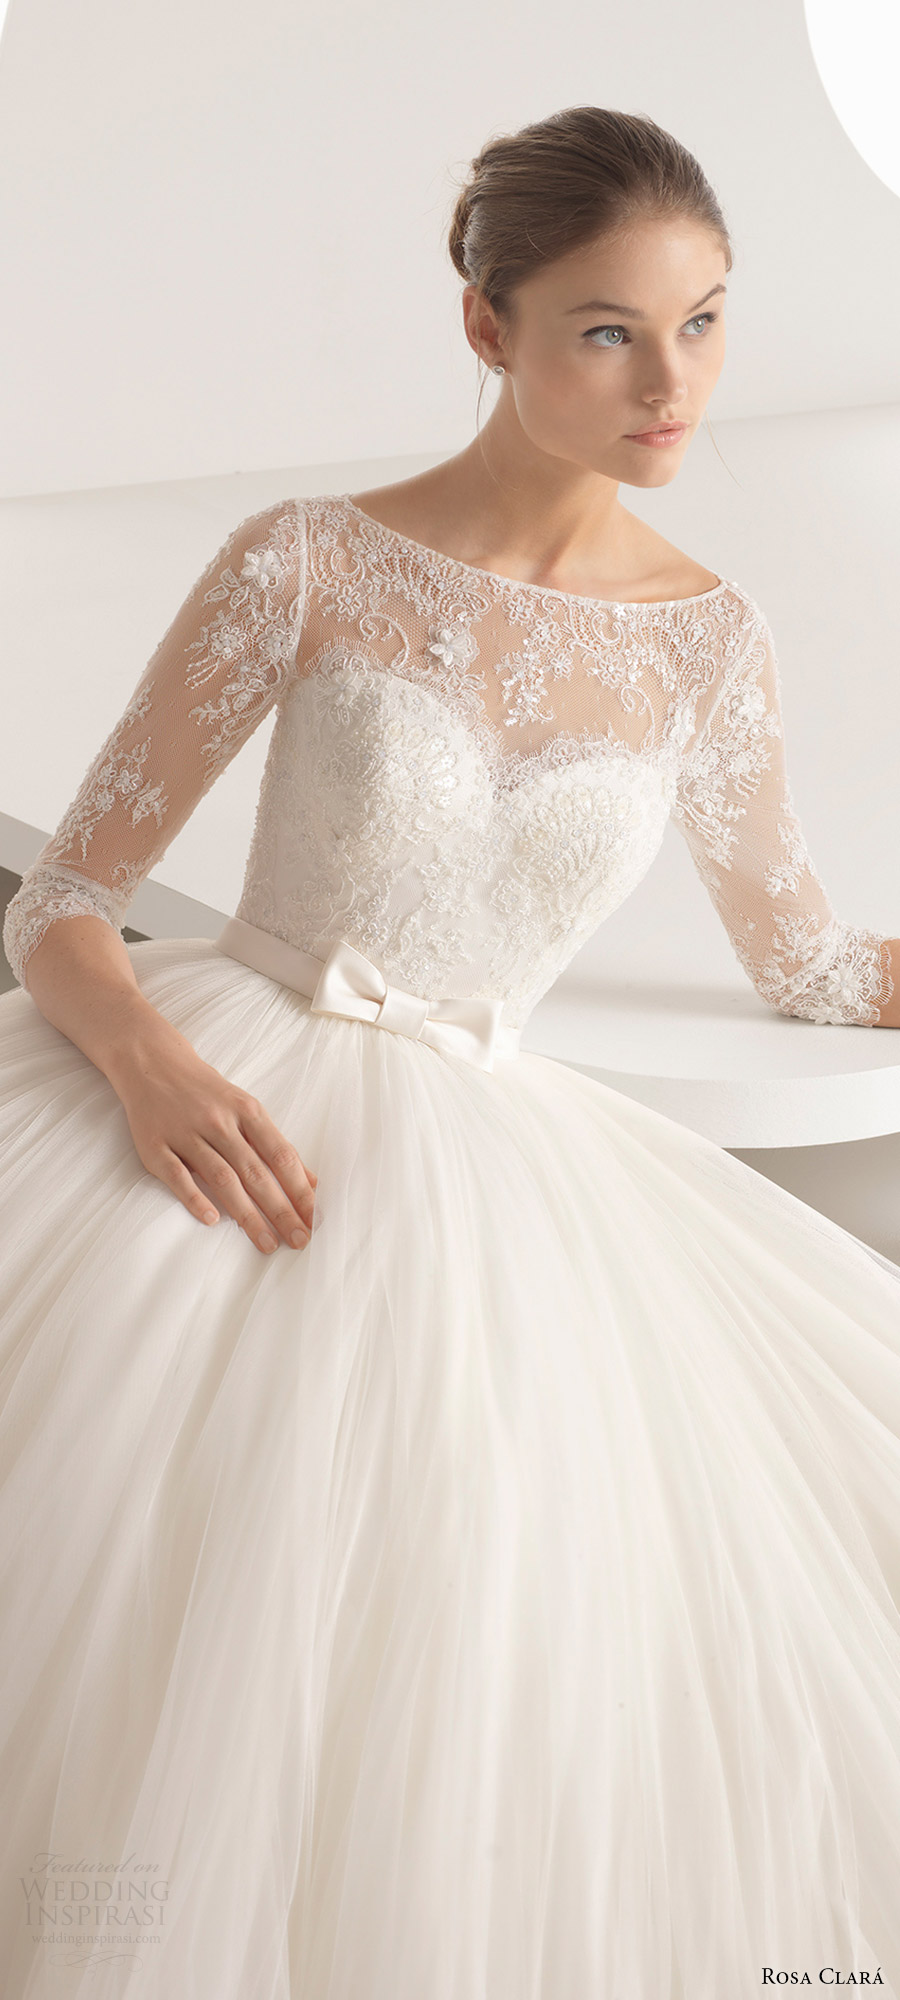 68bf8e28777 rosa clara 2018 bridal trends 3 quarter illusion sleeves bateau neck lace  bodice ball gown wedding